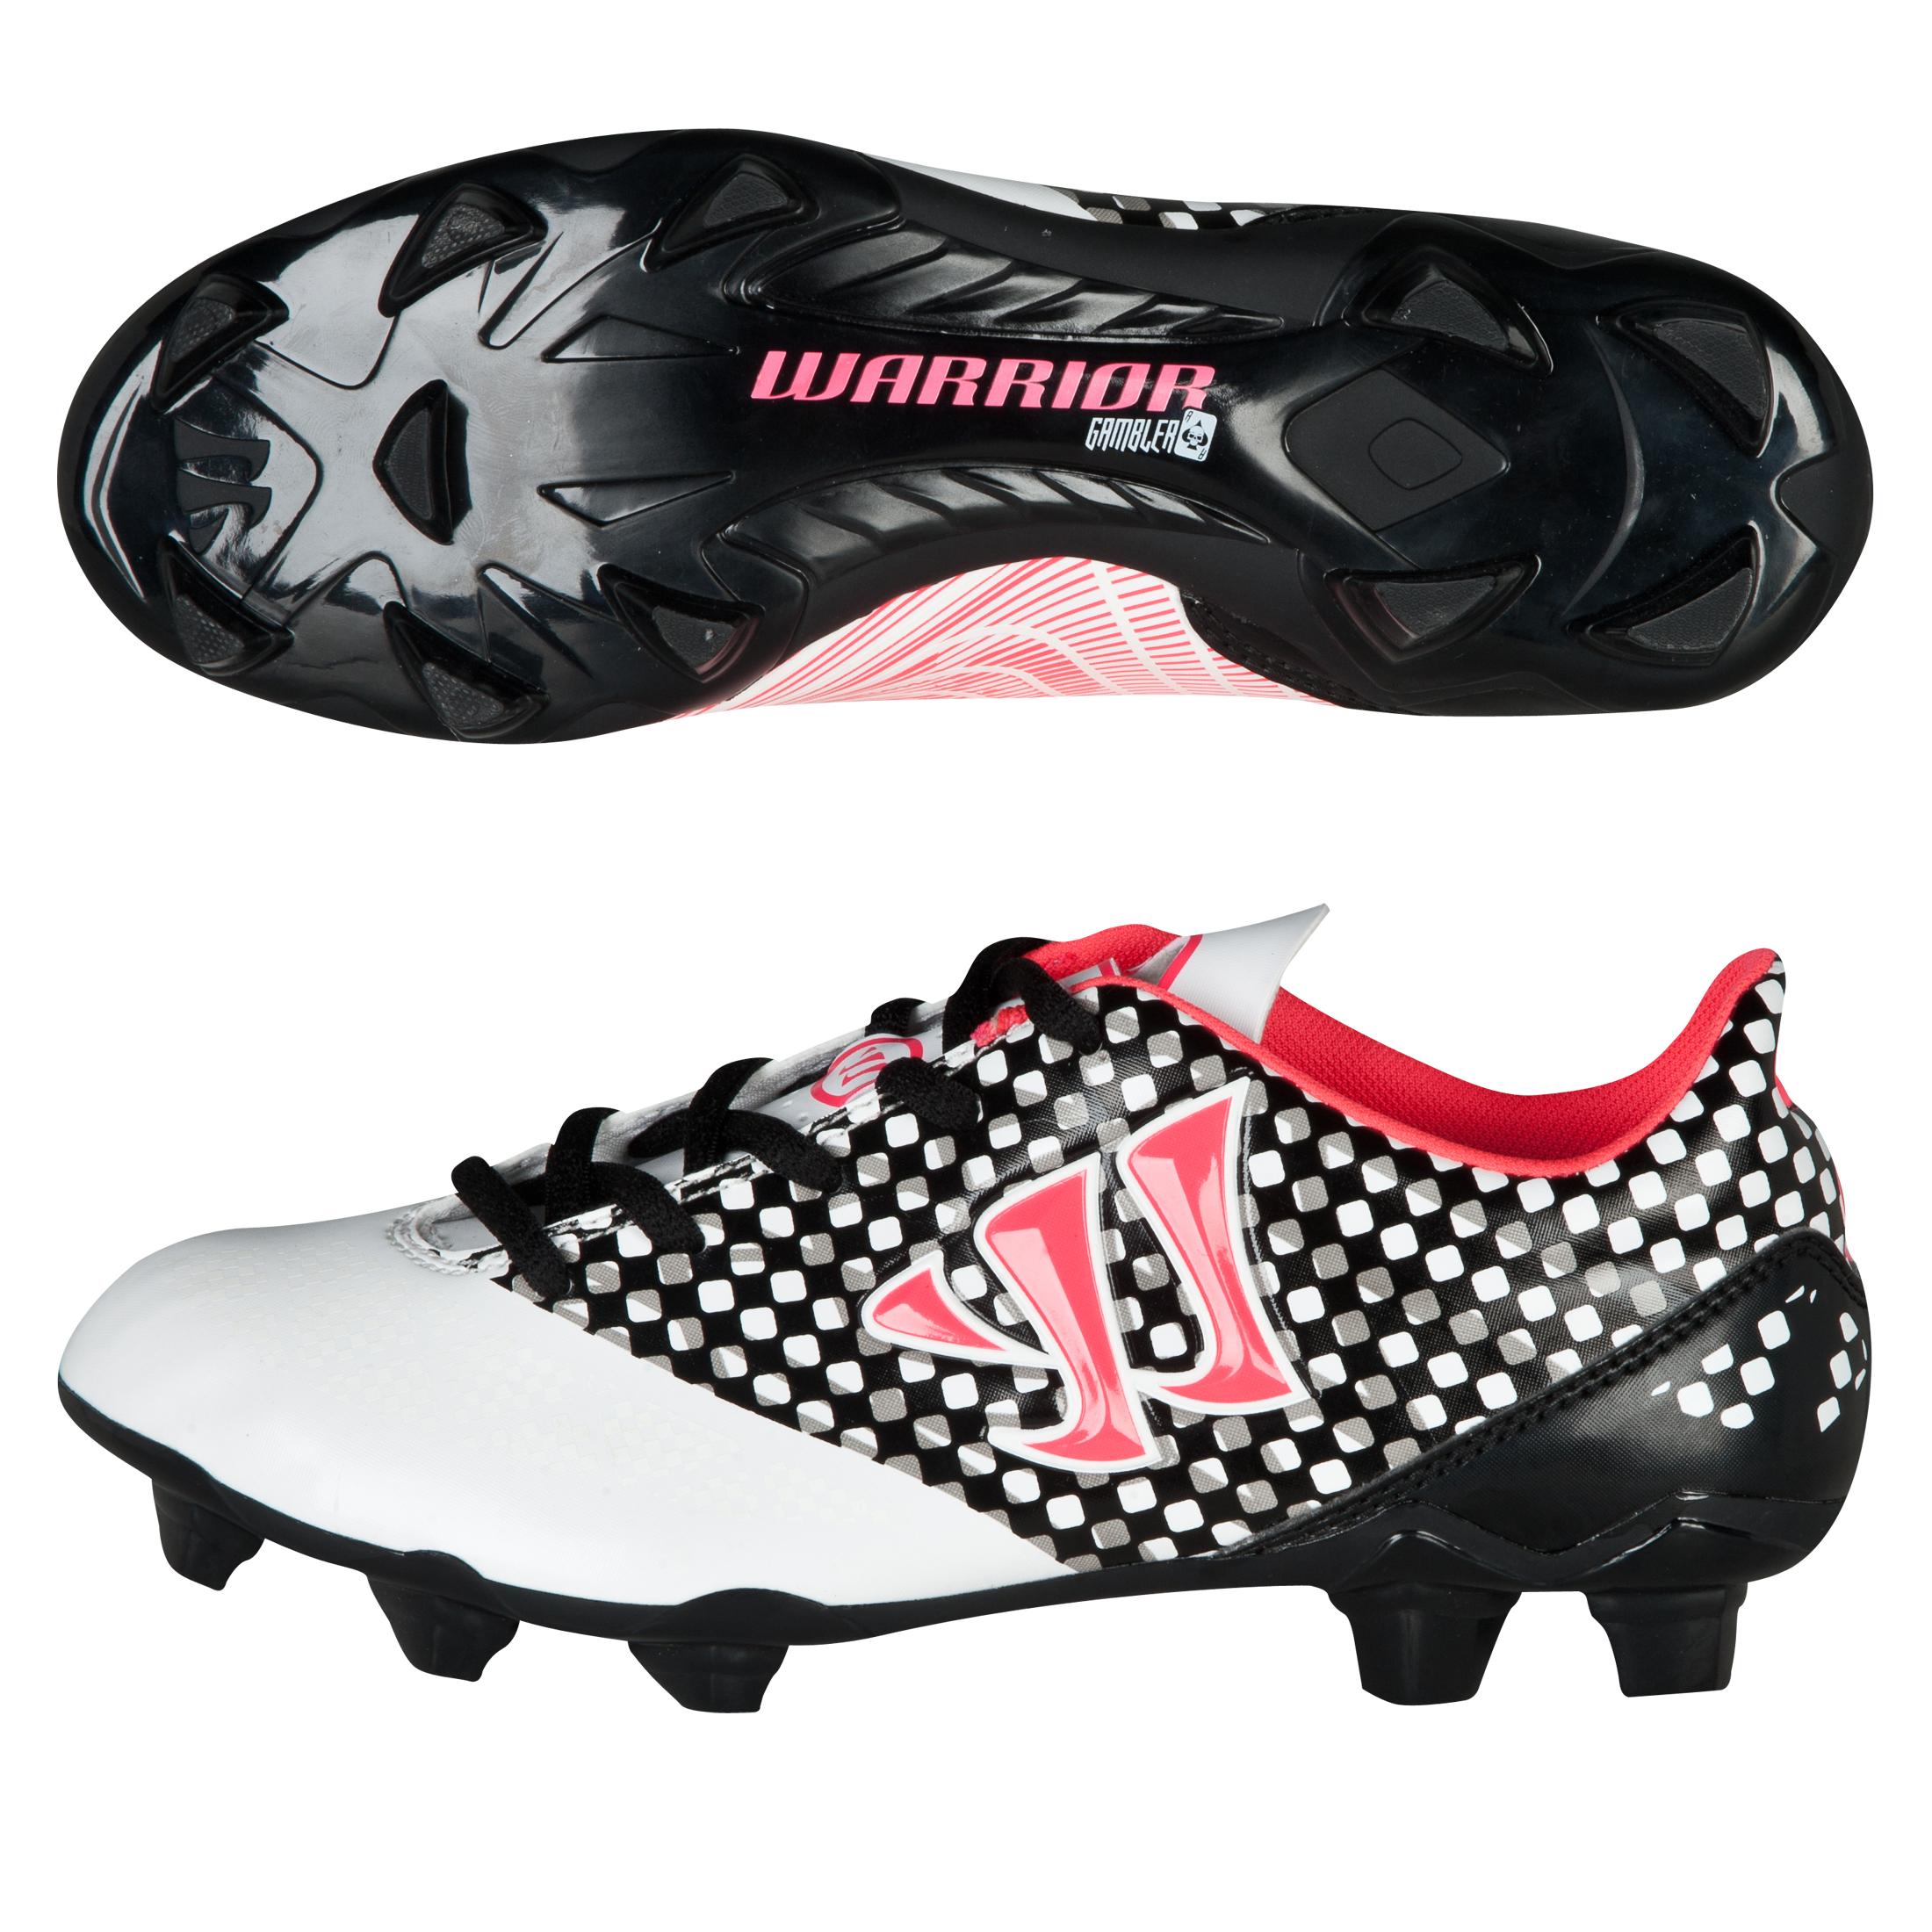 Warrior Sports Gambler Combat Firm Ground Football Boots - Kids White